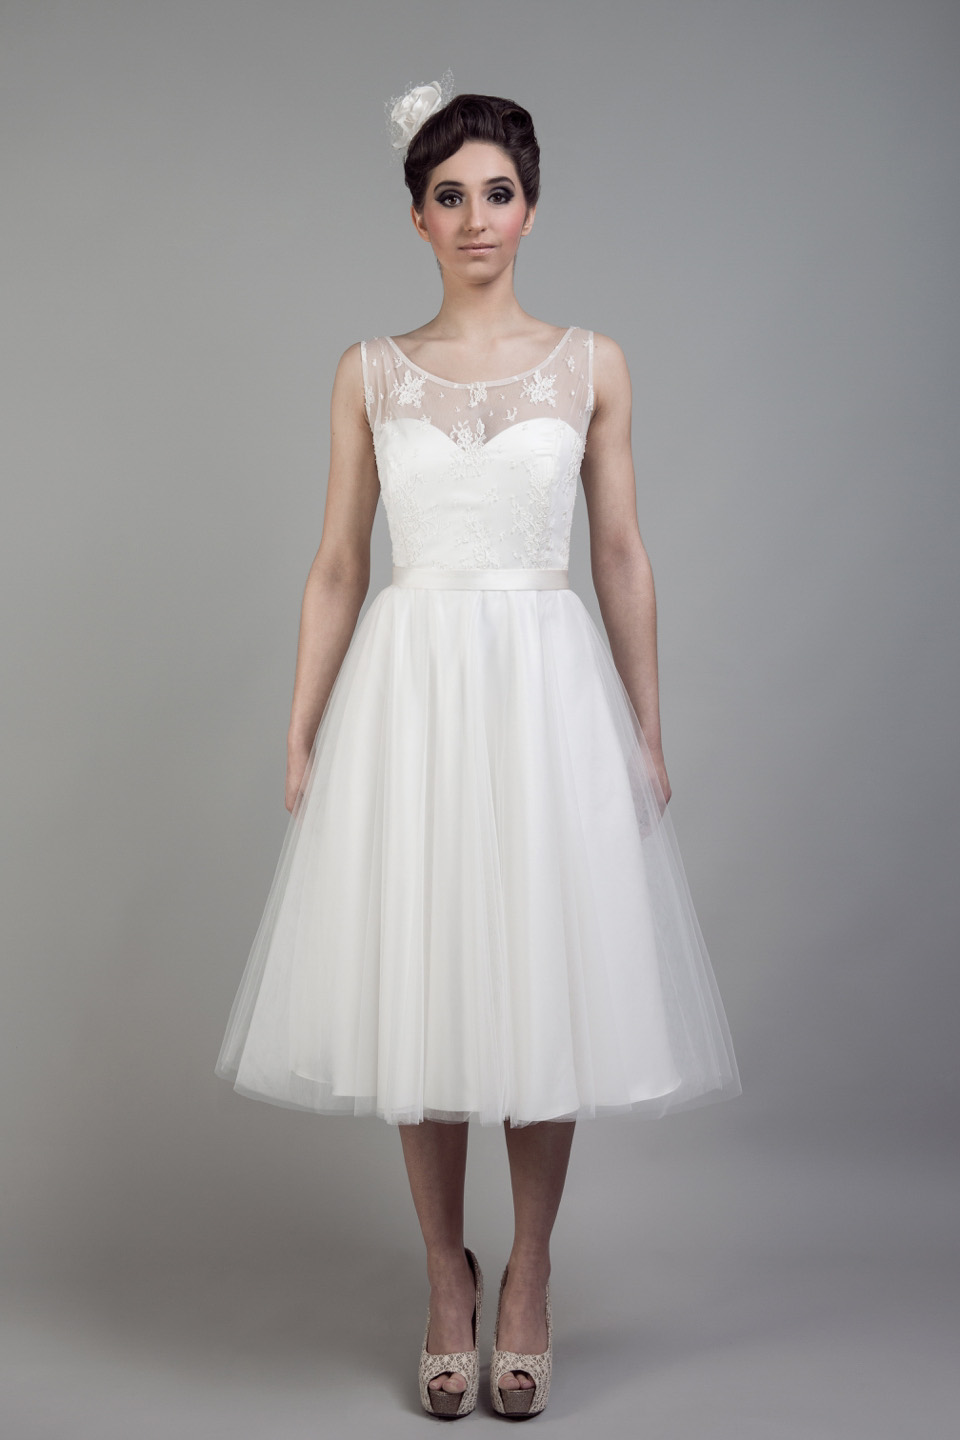 e1a6d31ad732 wpid Tobi Hannah short wedding dresses - Adventure: The new collection of  short wedding dresses